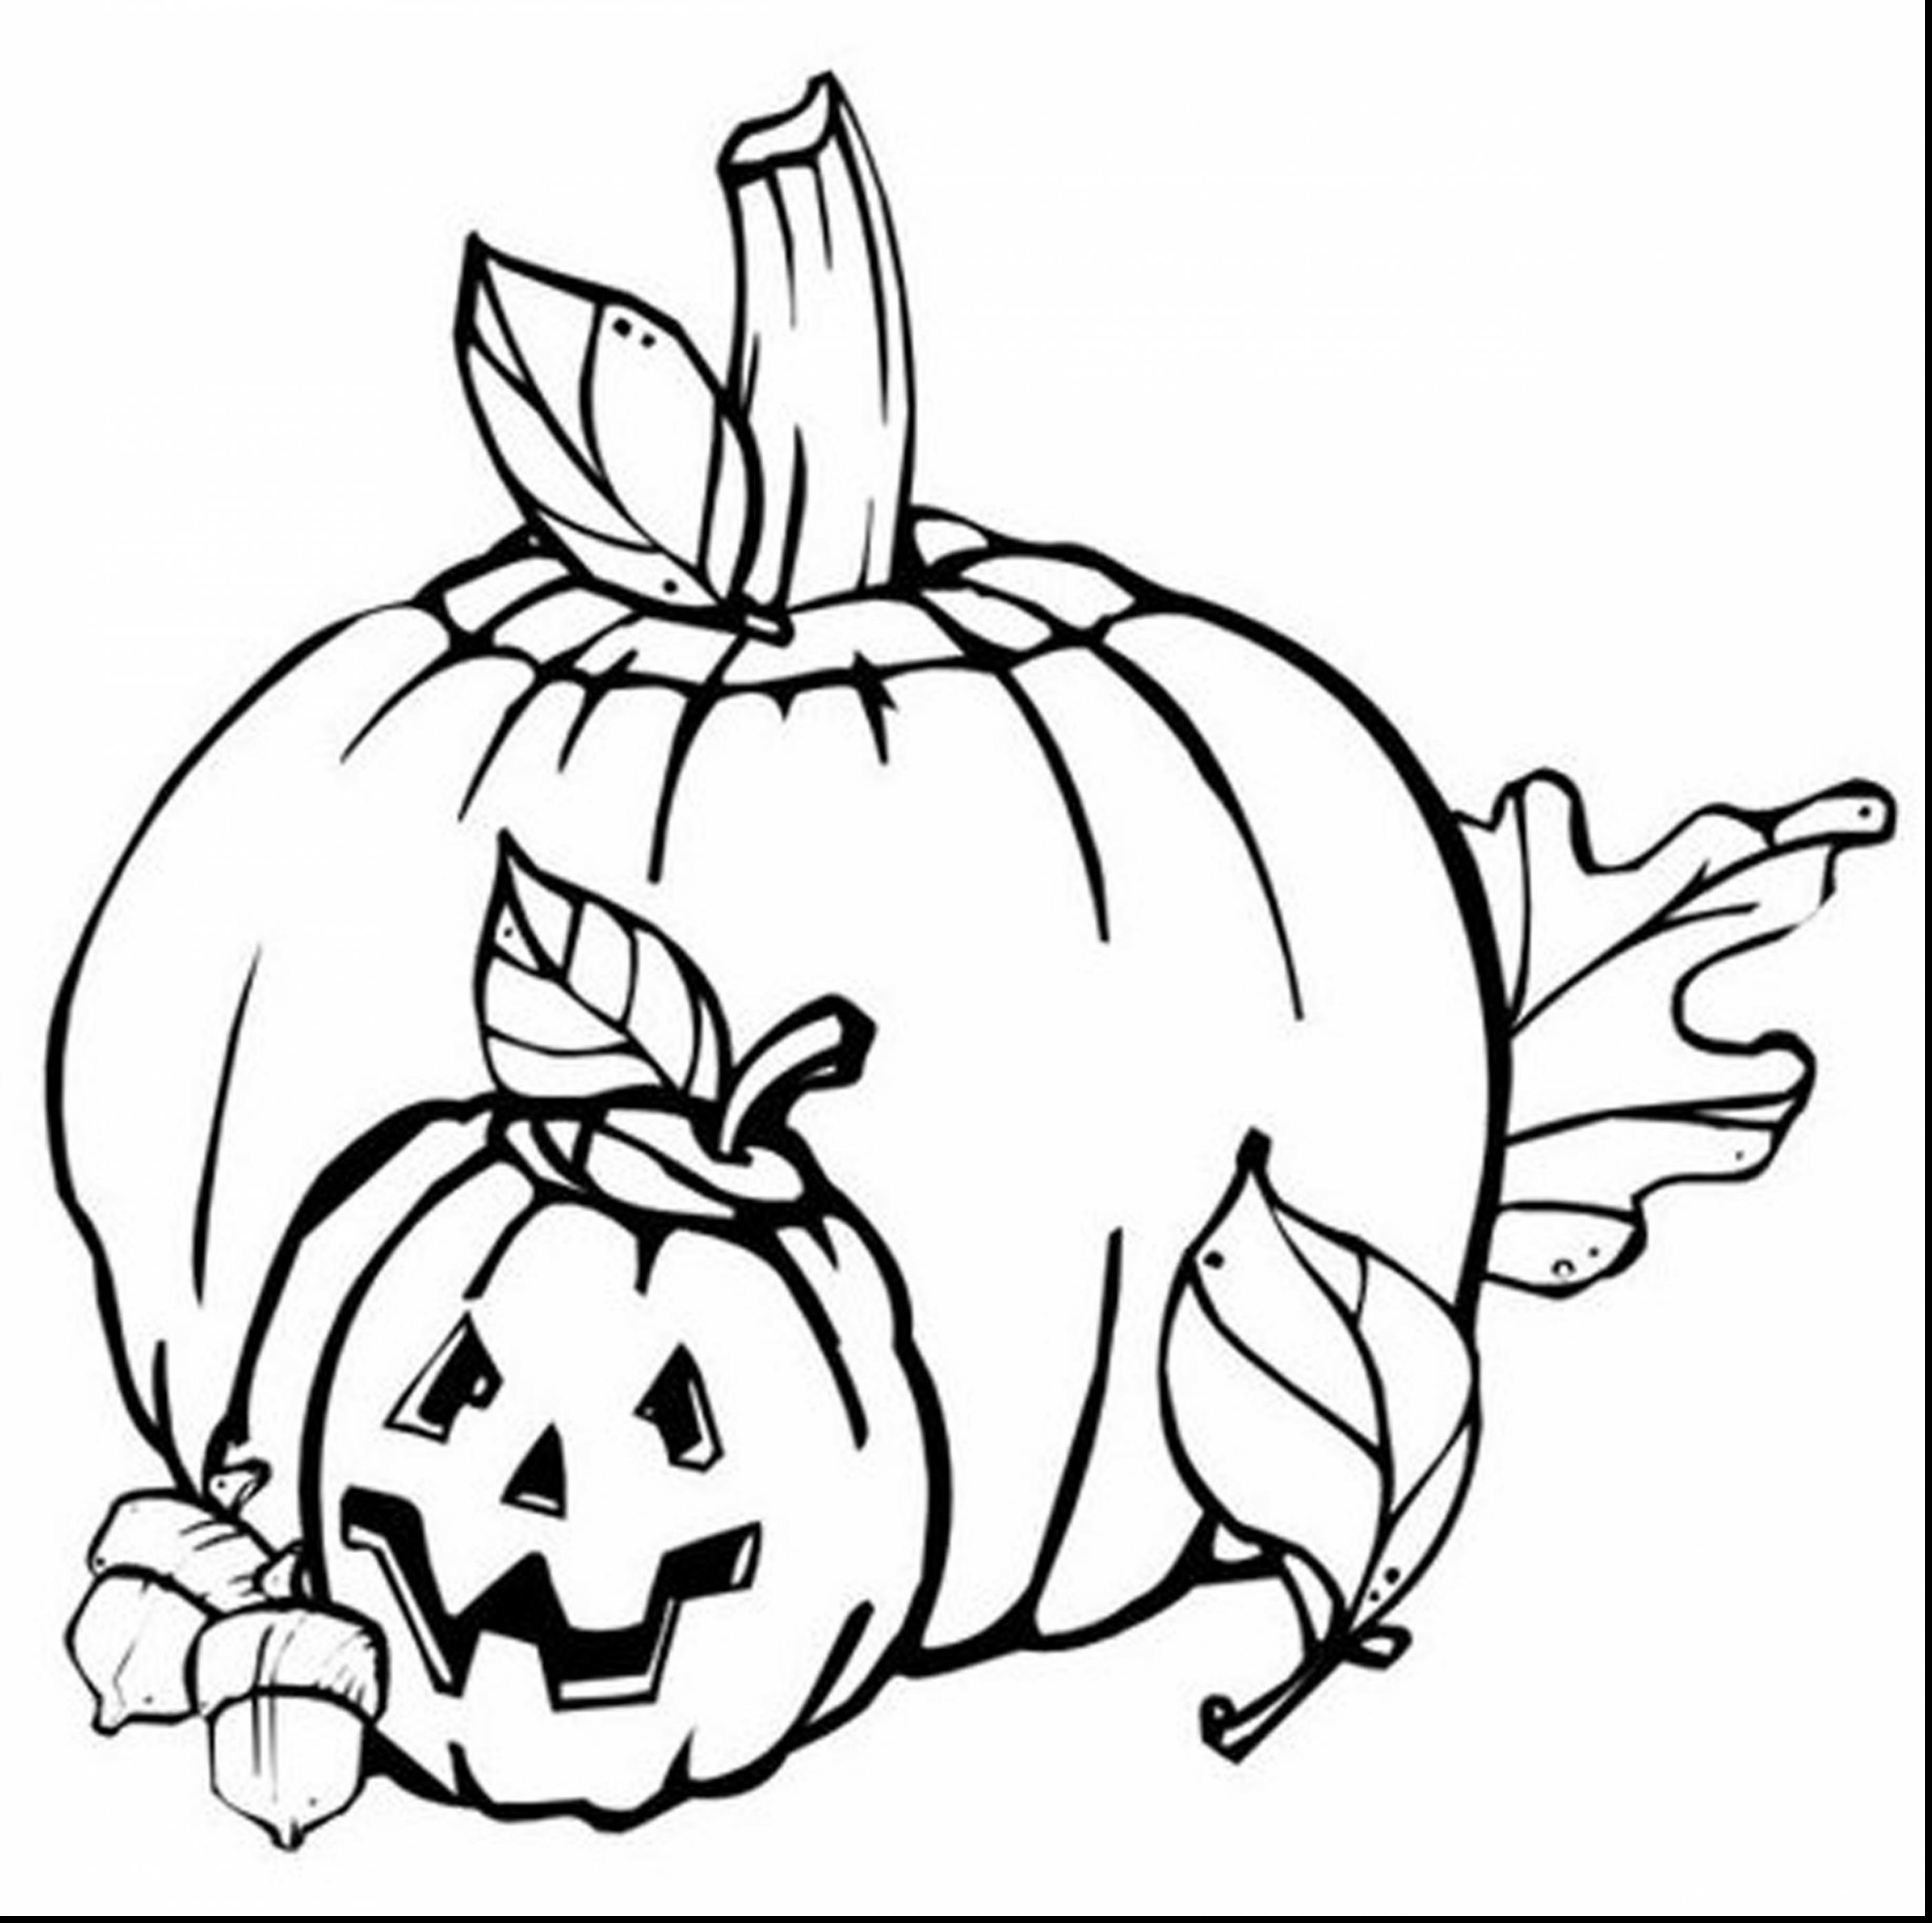 pumpkin colouring page pumpkins coloring pages to celebrate thanksgiving learn pumpkin page colouring